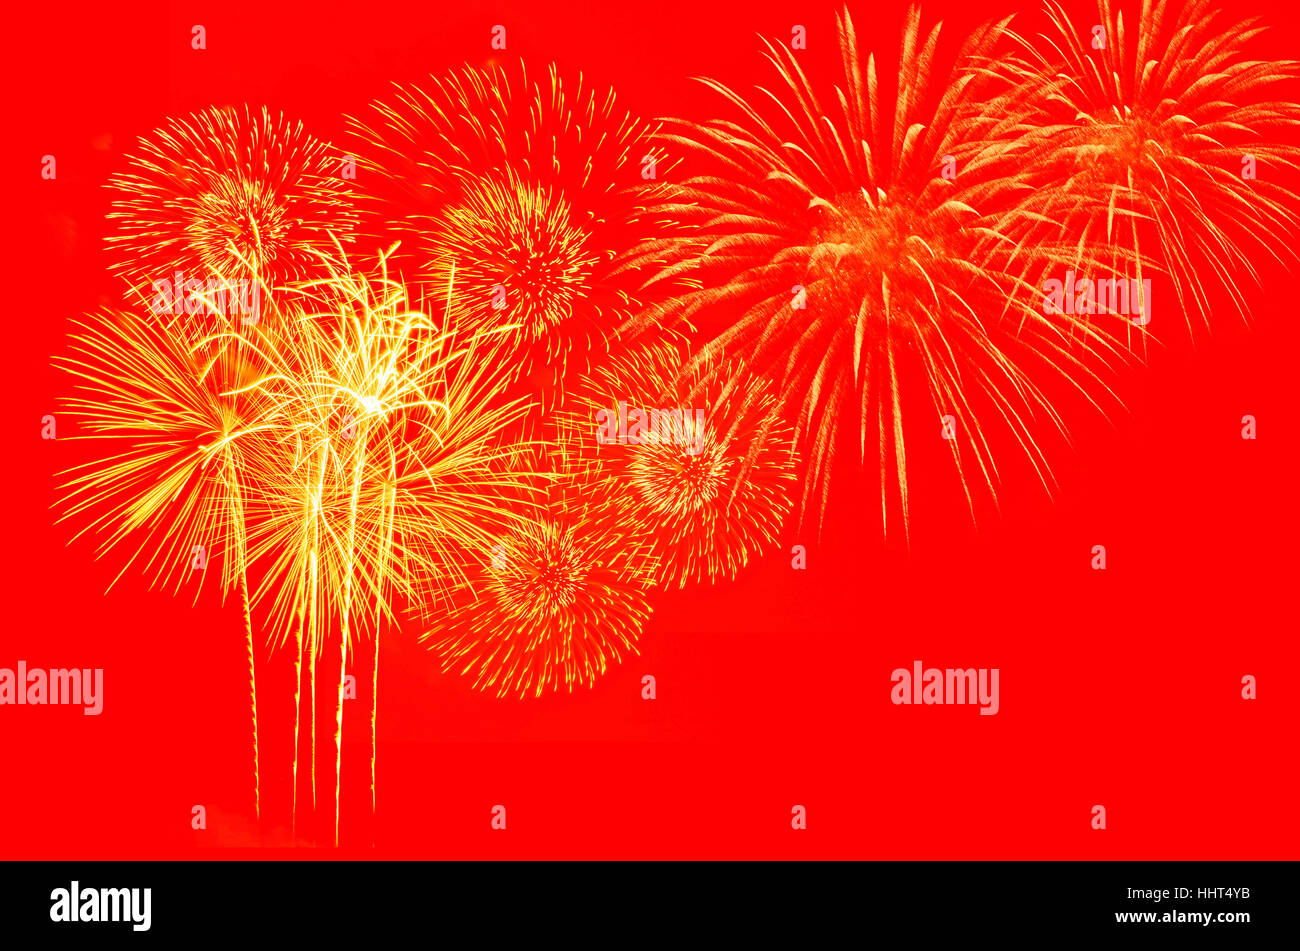 Red Fireworks Free Stock Photo: Gold Fireworks On Red Background Stock Photo: 131452479